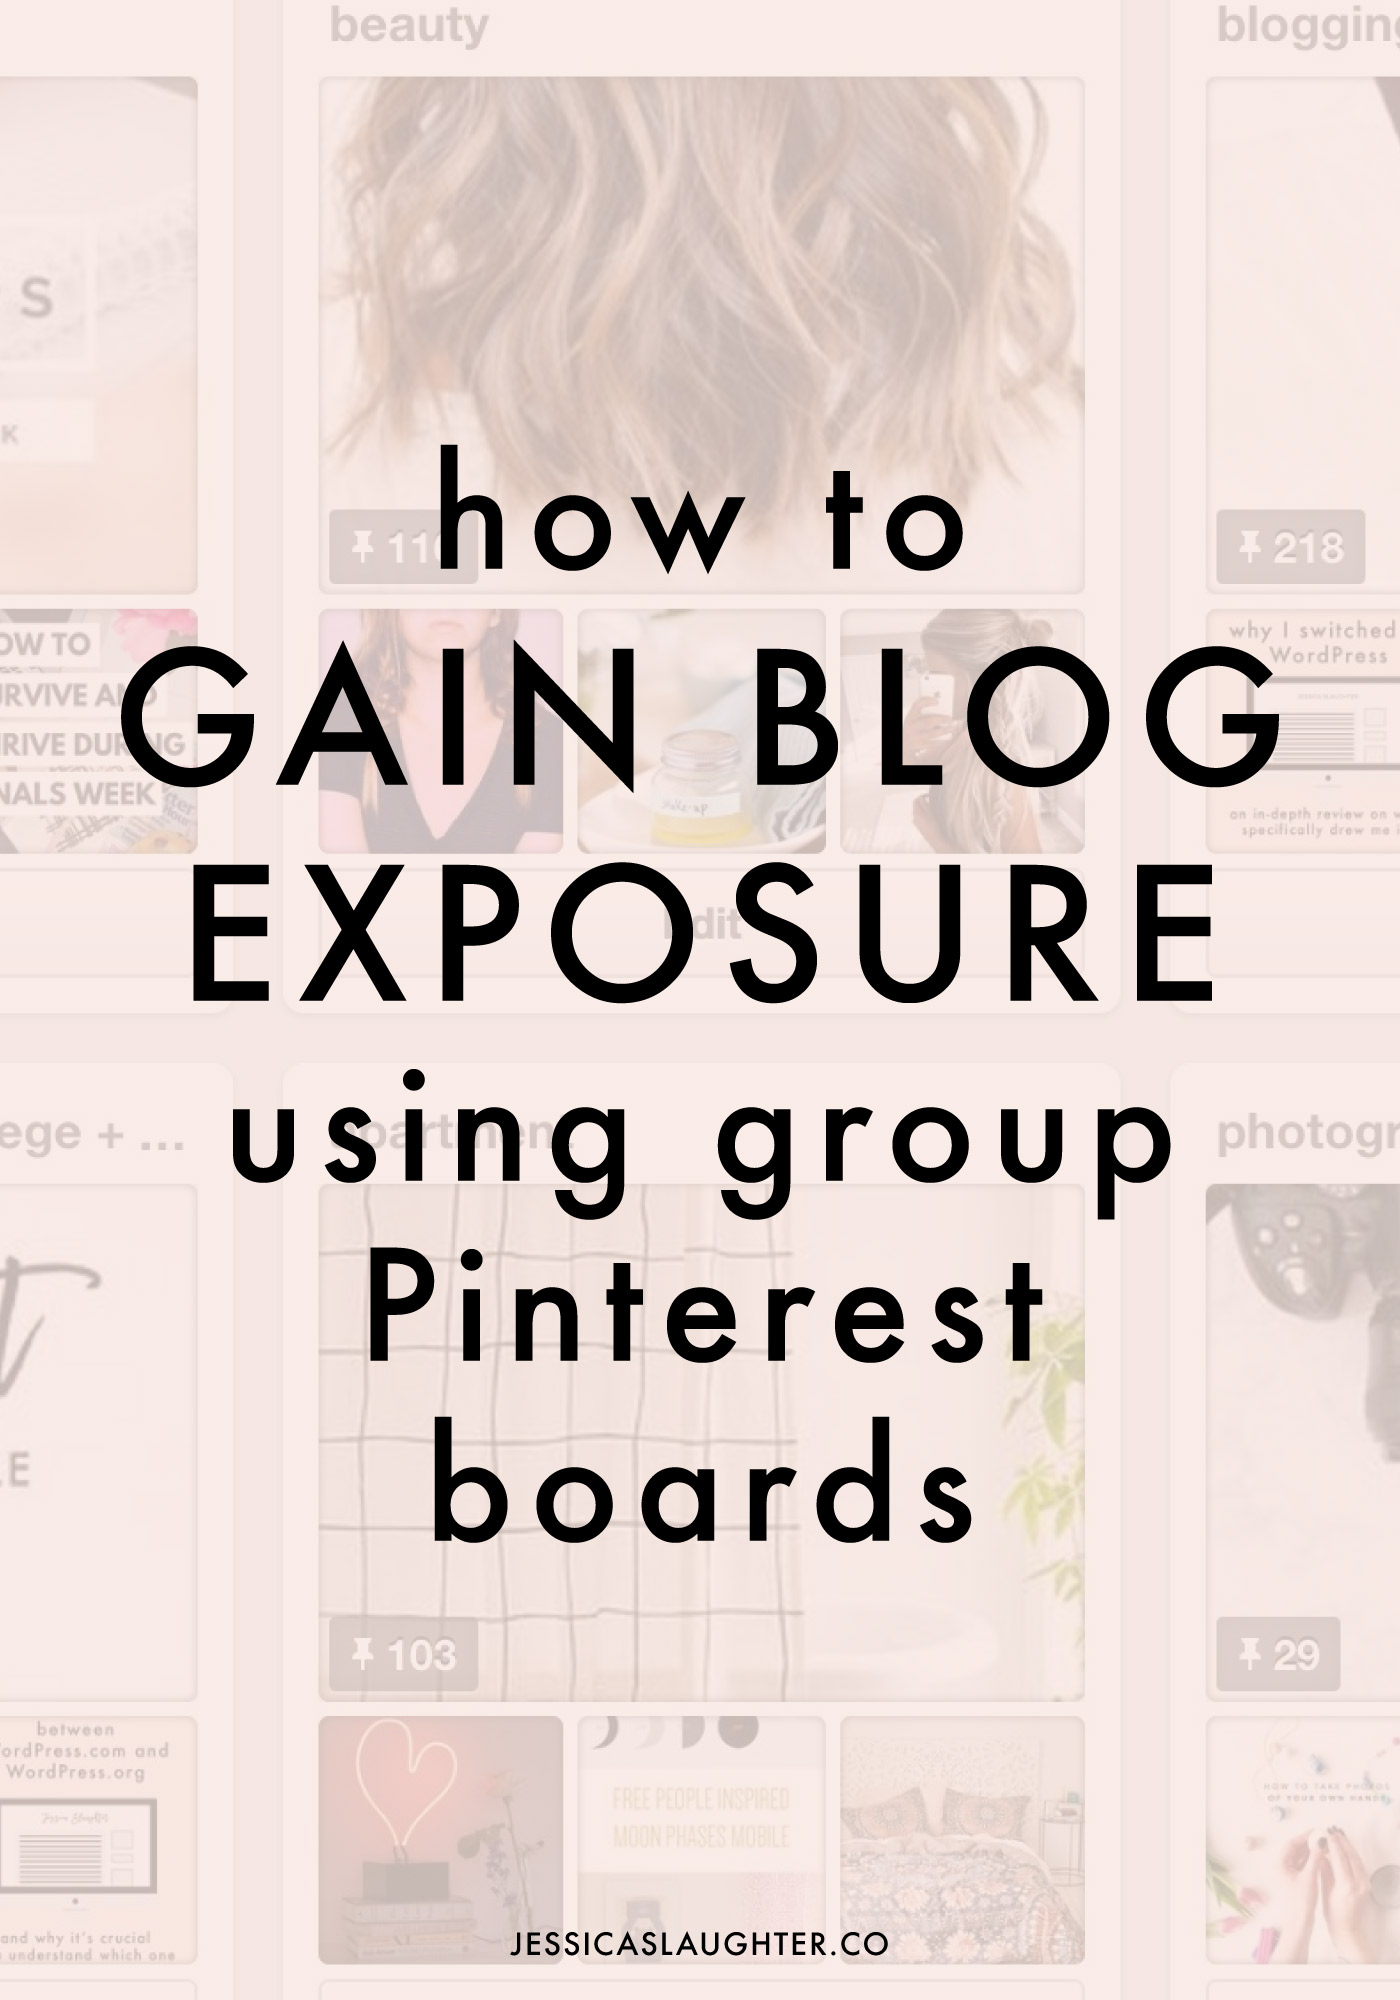 How To Gain Blog Exposure Using Group Pinterest Boards | Jessica Slaughter